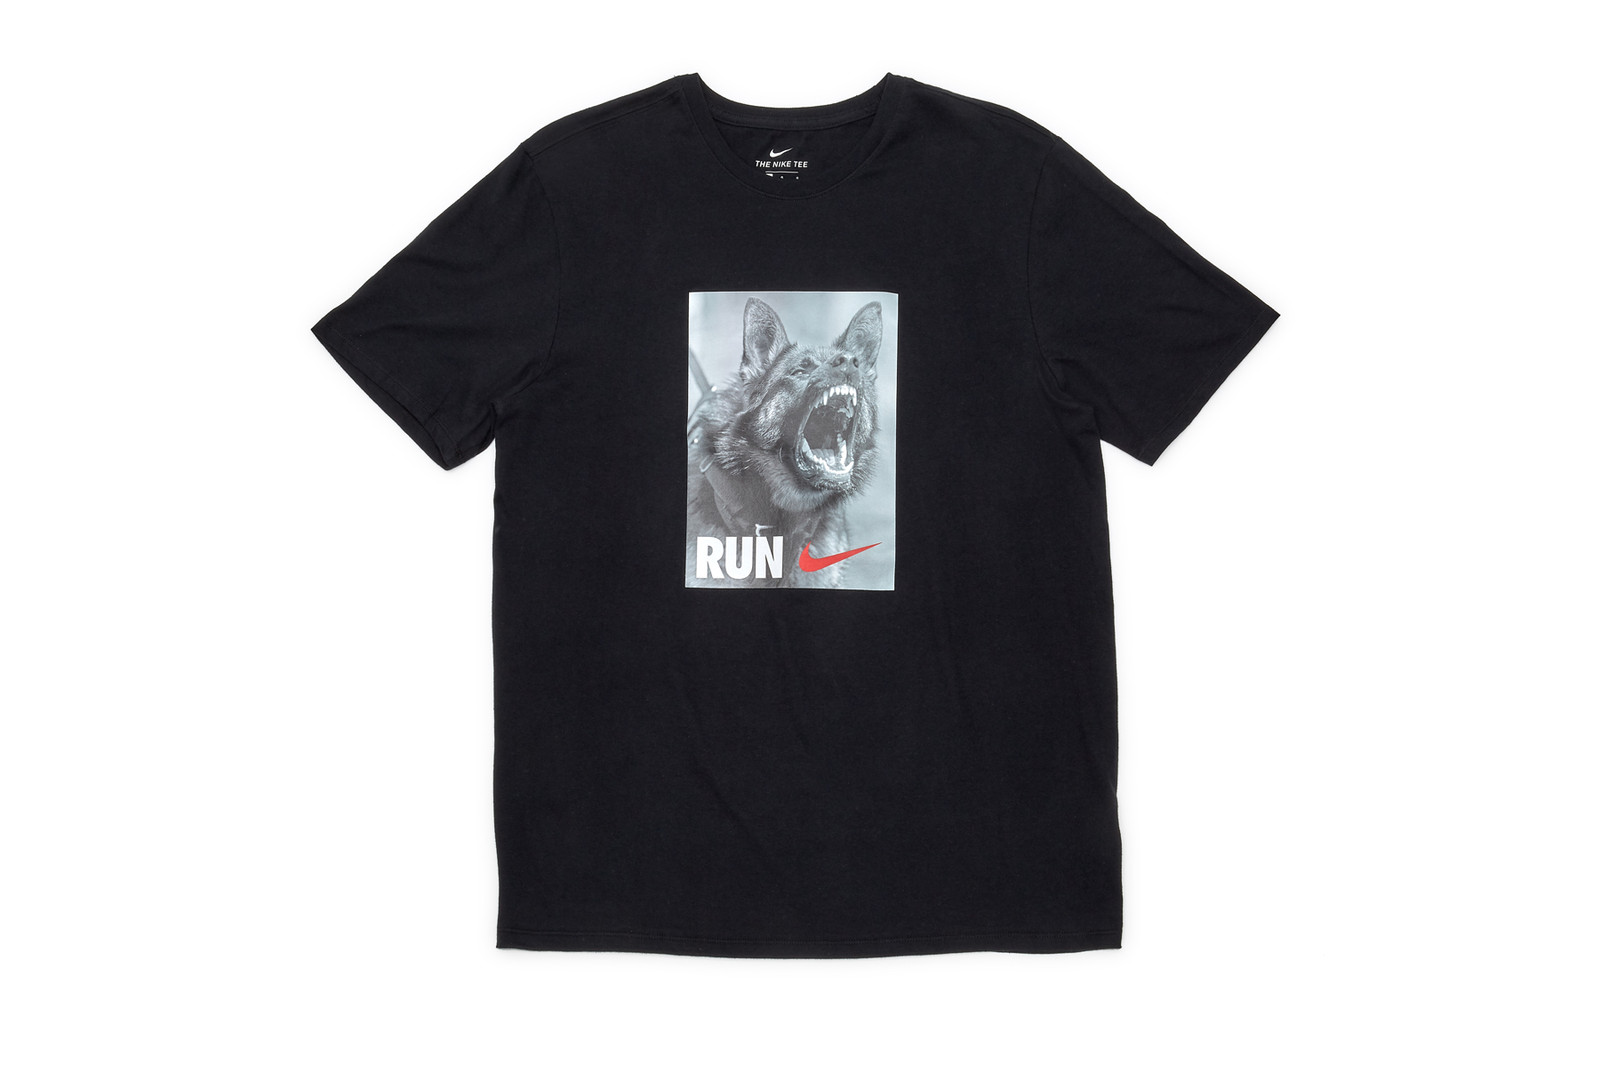 Dover Street Market Year of the Dog Collection